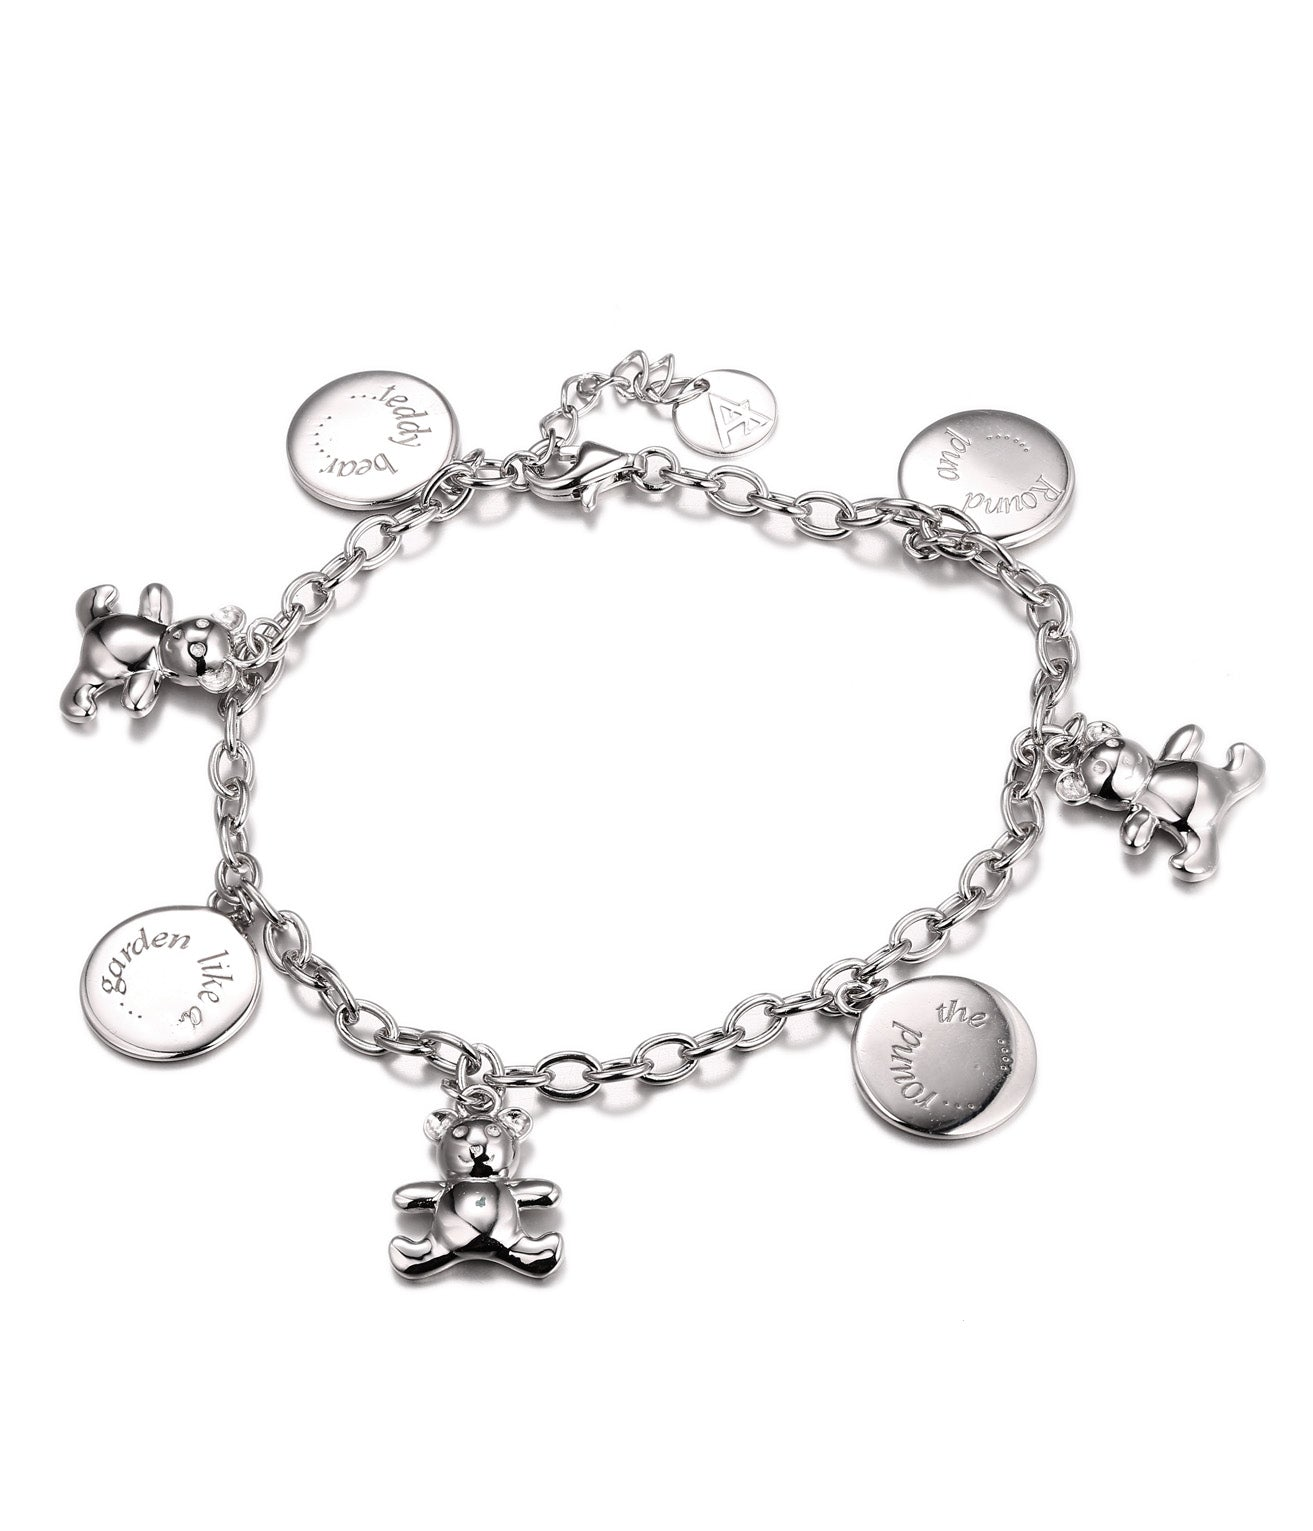 Amina Charm Bracelet, Teddy Bear and Round Charms, 925 Sterling Silver - Quan Jewelry